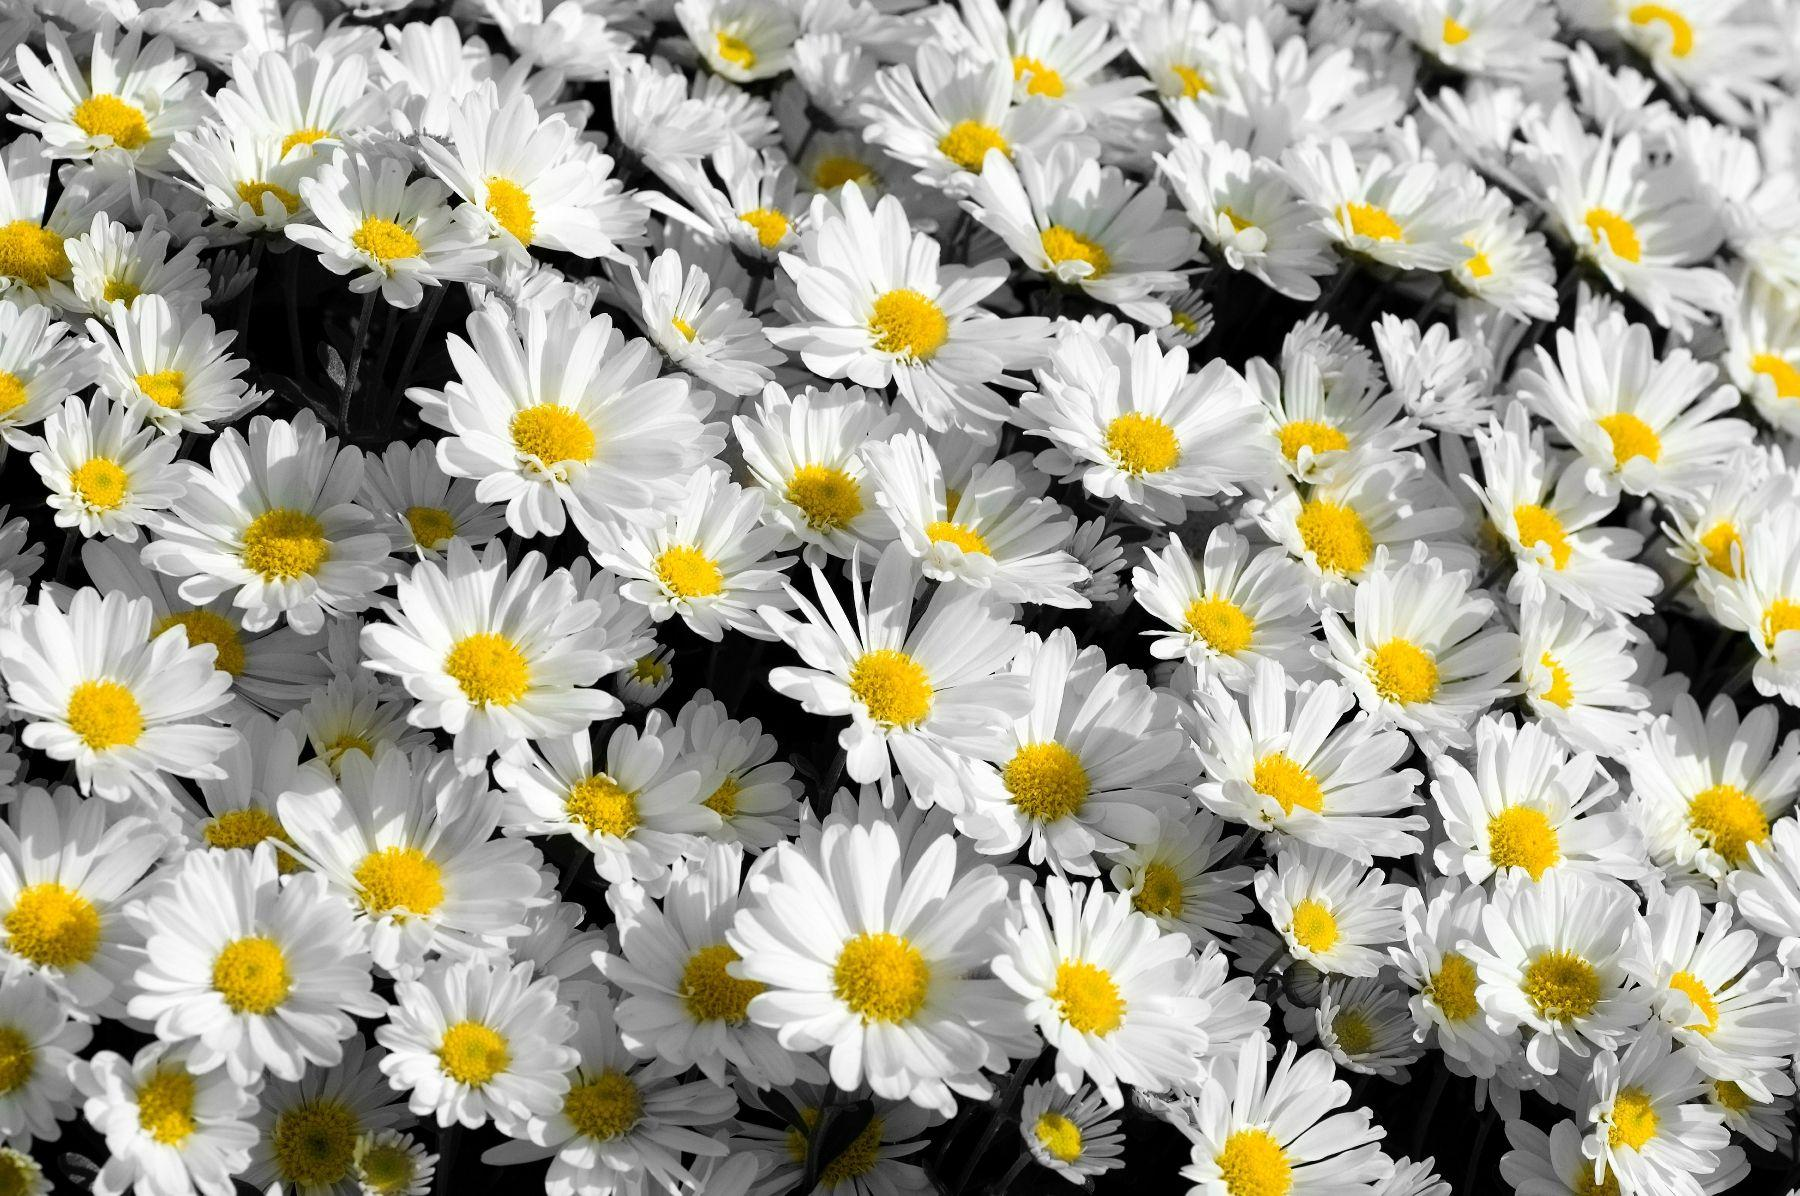 White Floral Tumblr Backgrounds Topsimages